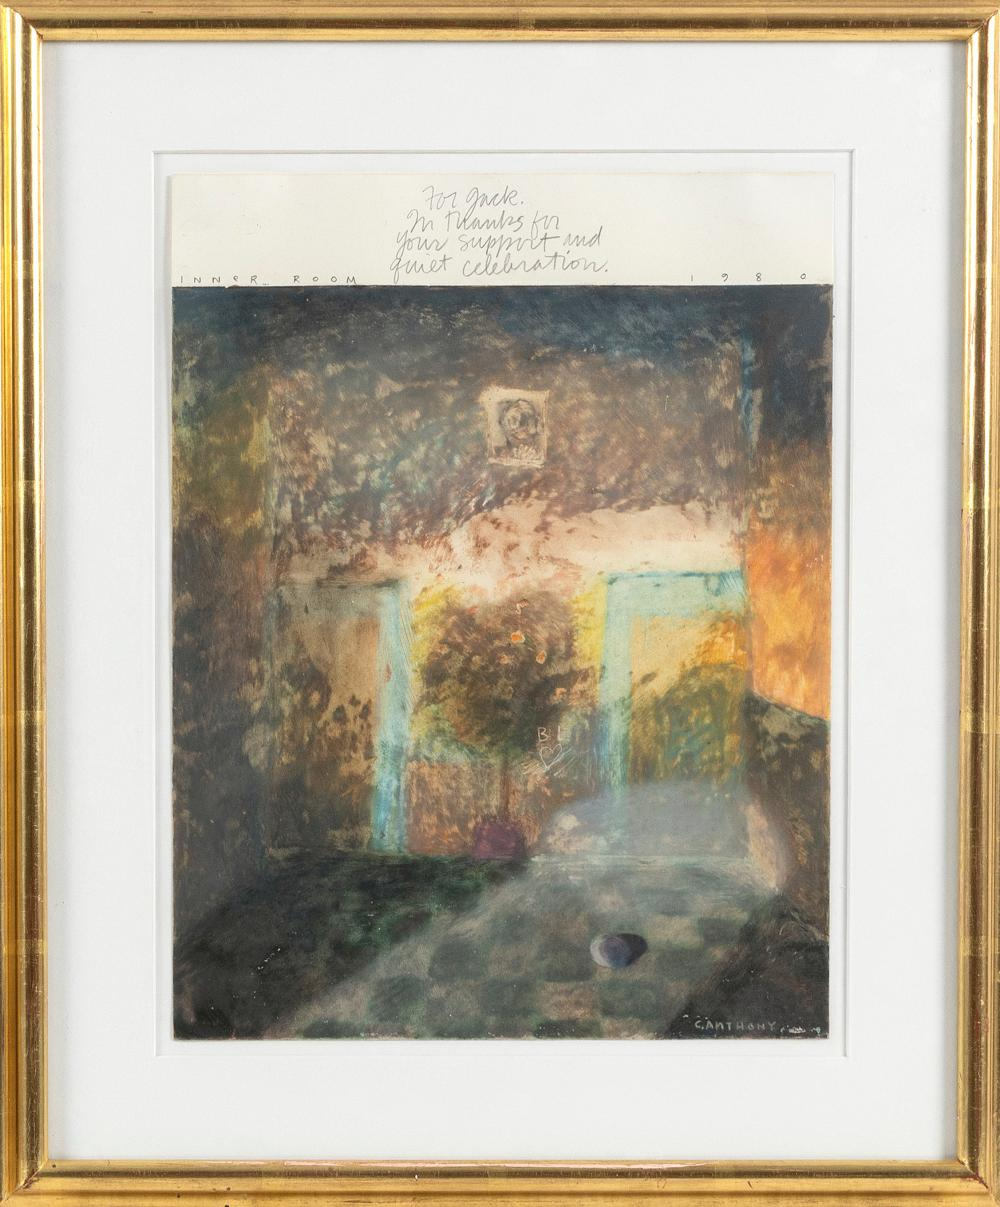 """CAROL ANTHONY (New Mexico/Connecticut, b. 1943), """"Inner Room""""., Oil crayon on paper, 12"""" x 8.75"""". Framed 17"""" x 13.75""""."""